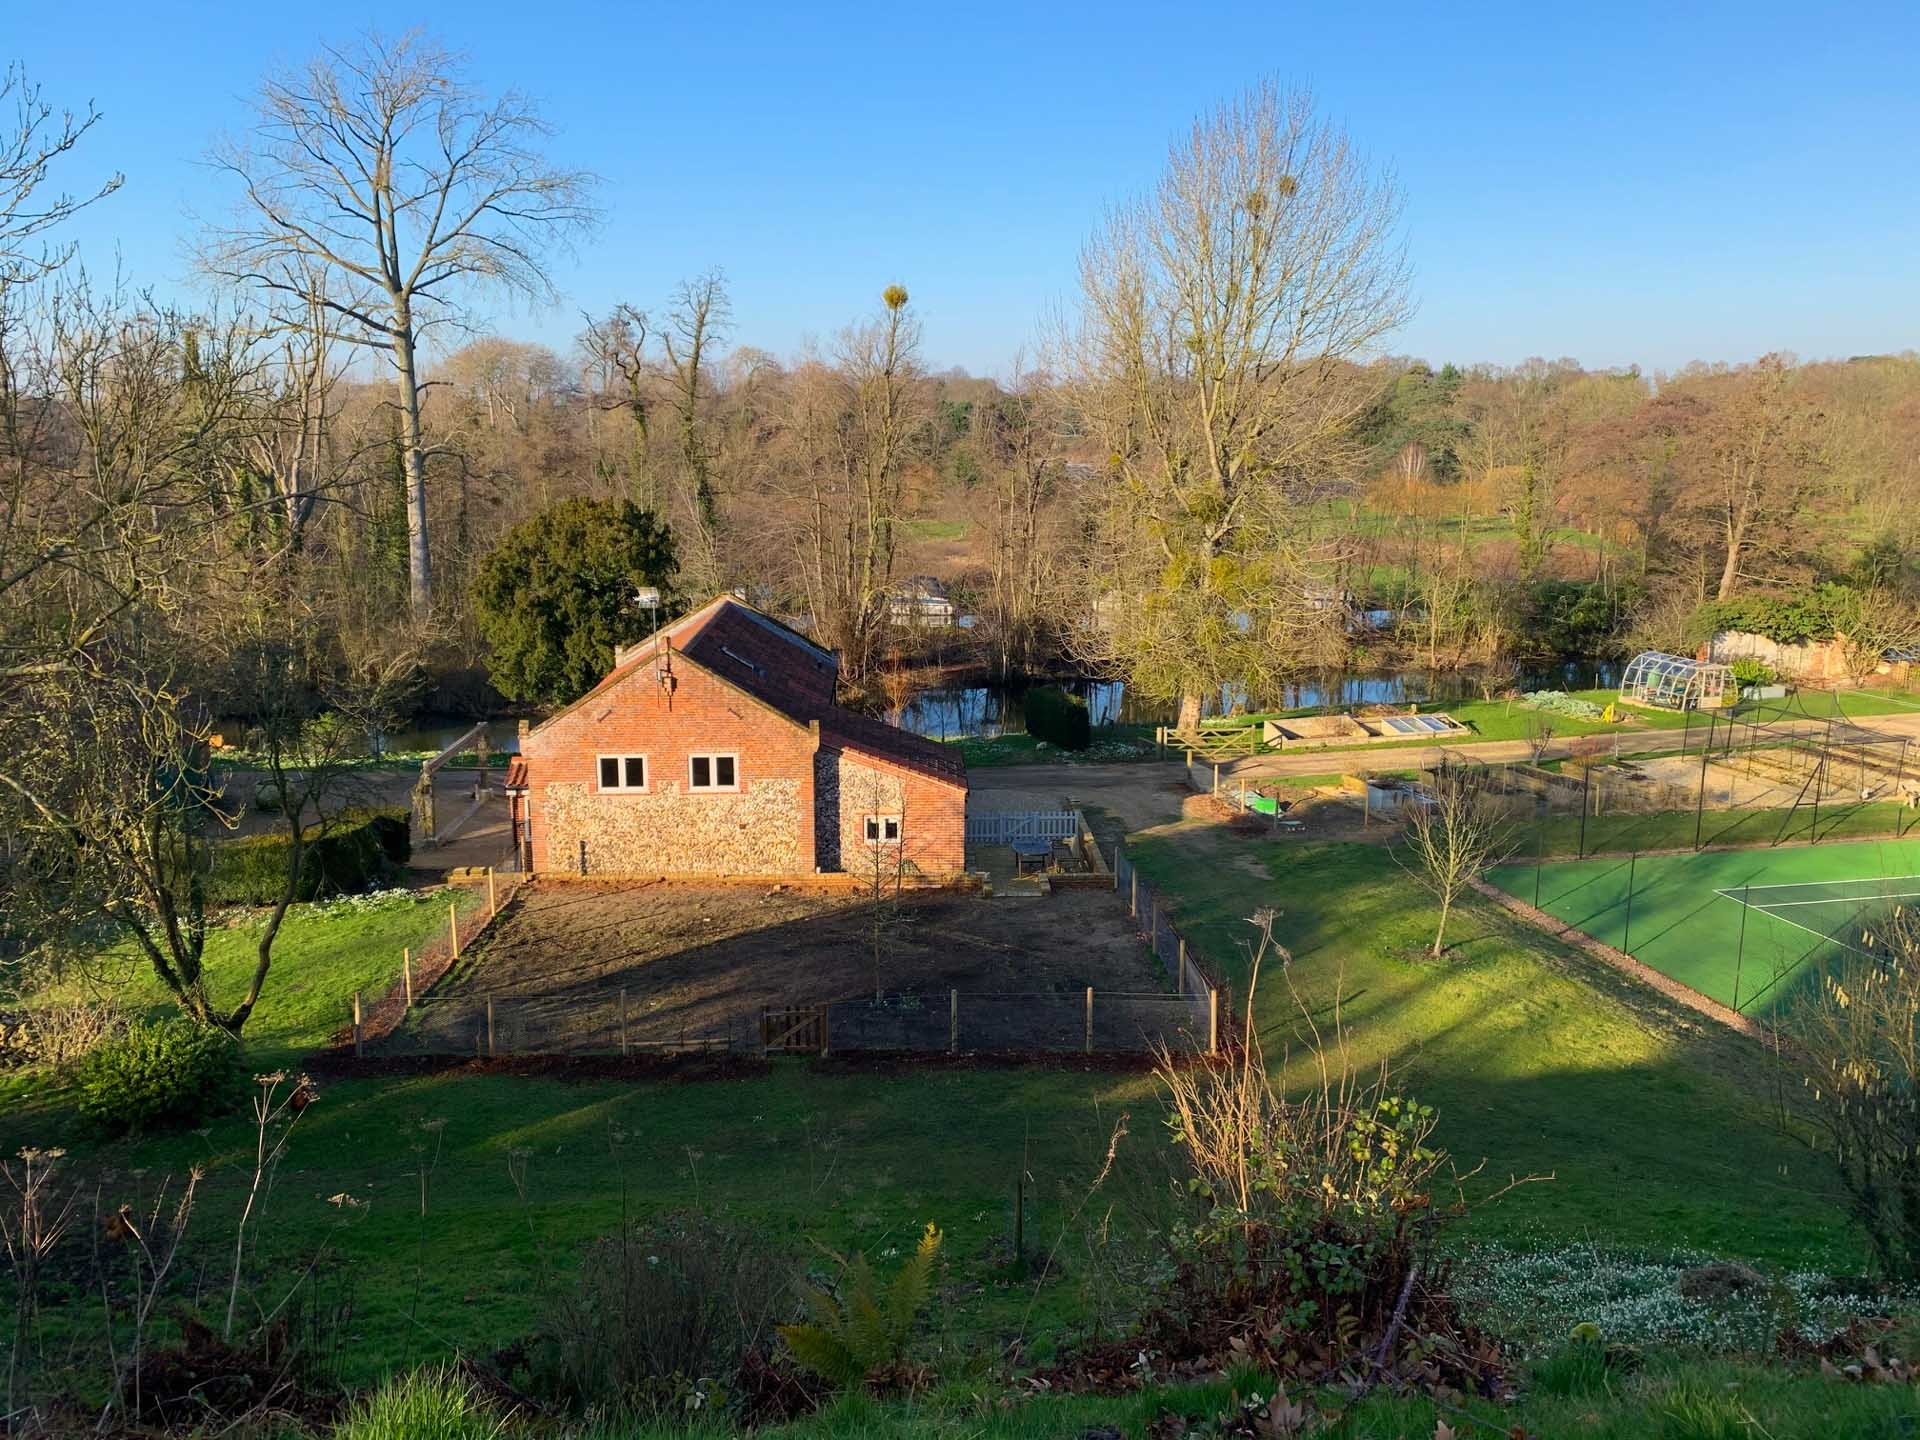 Ariel photo of Boathouse Barn and surrounding private grounds.